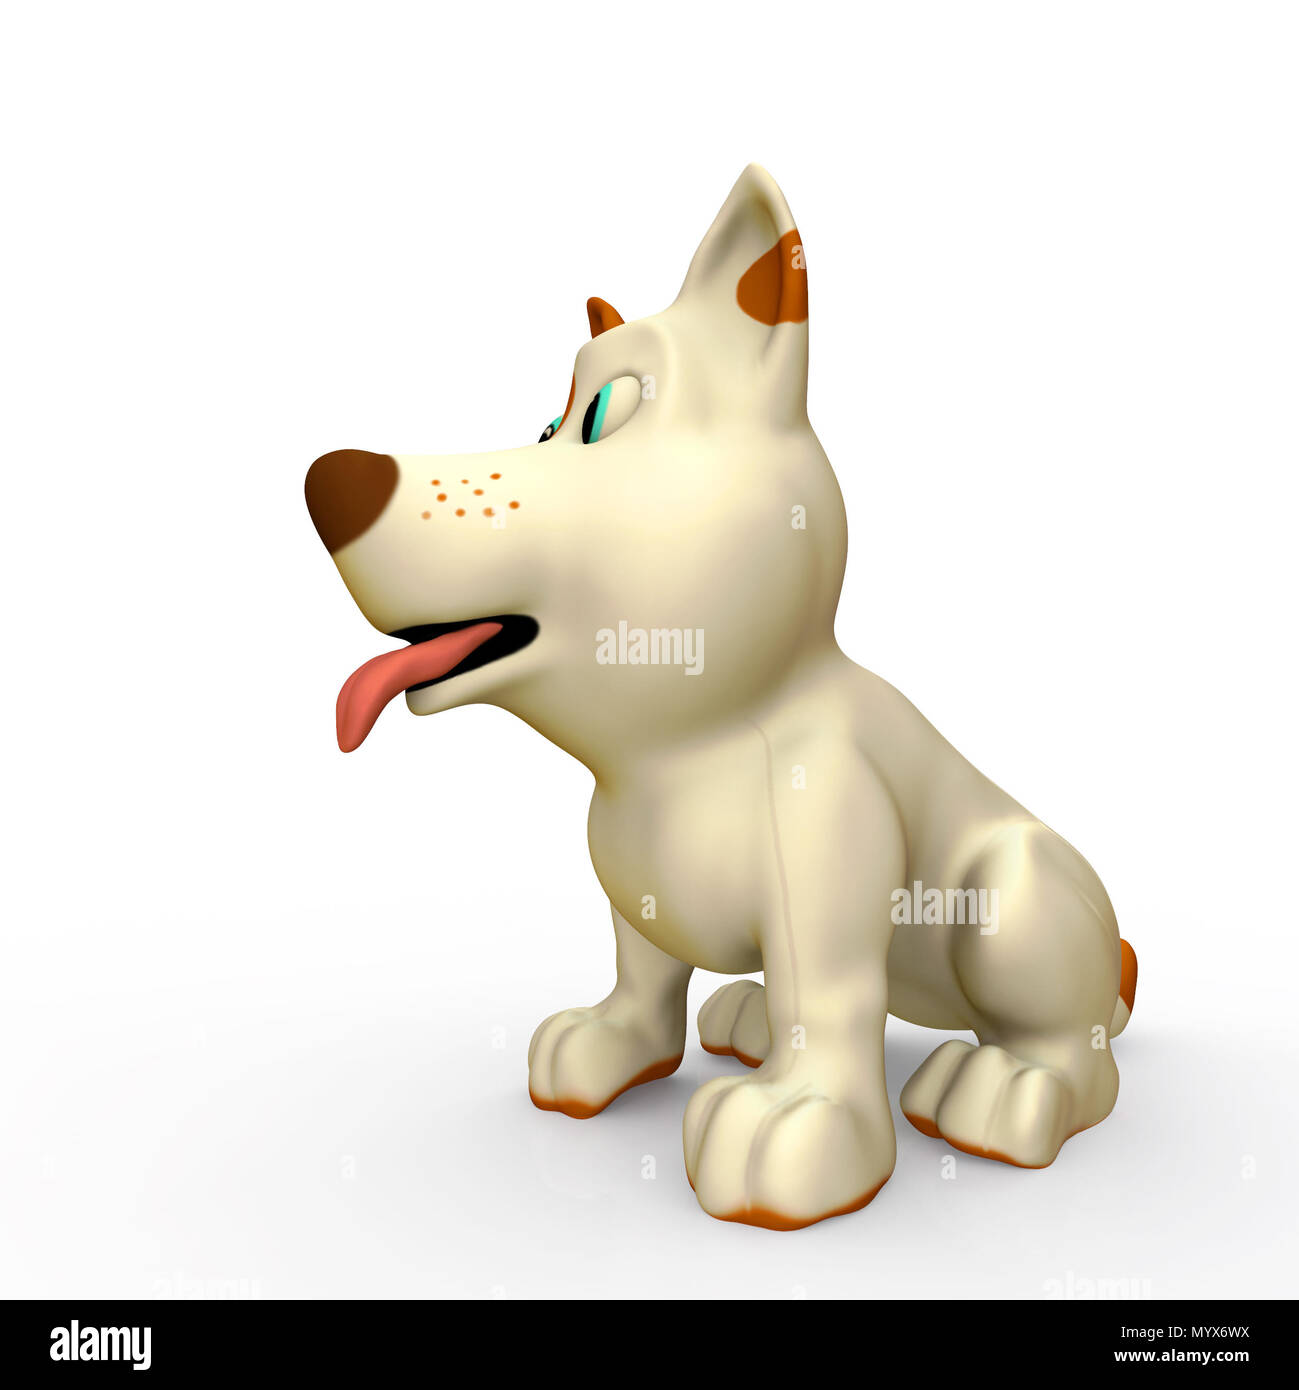 Cute dog on white background with shadow. 3D render illustration Stock Photo